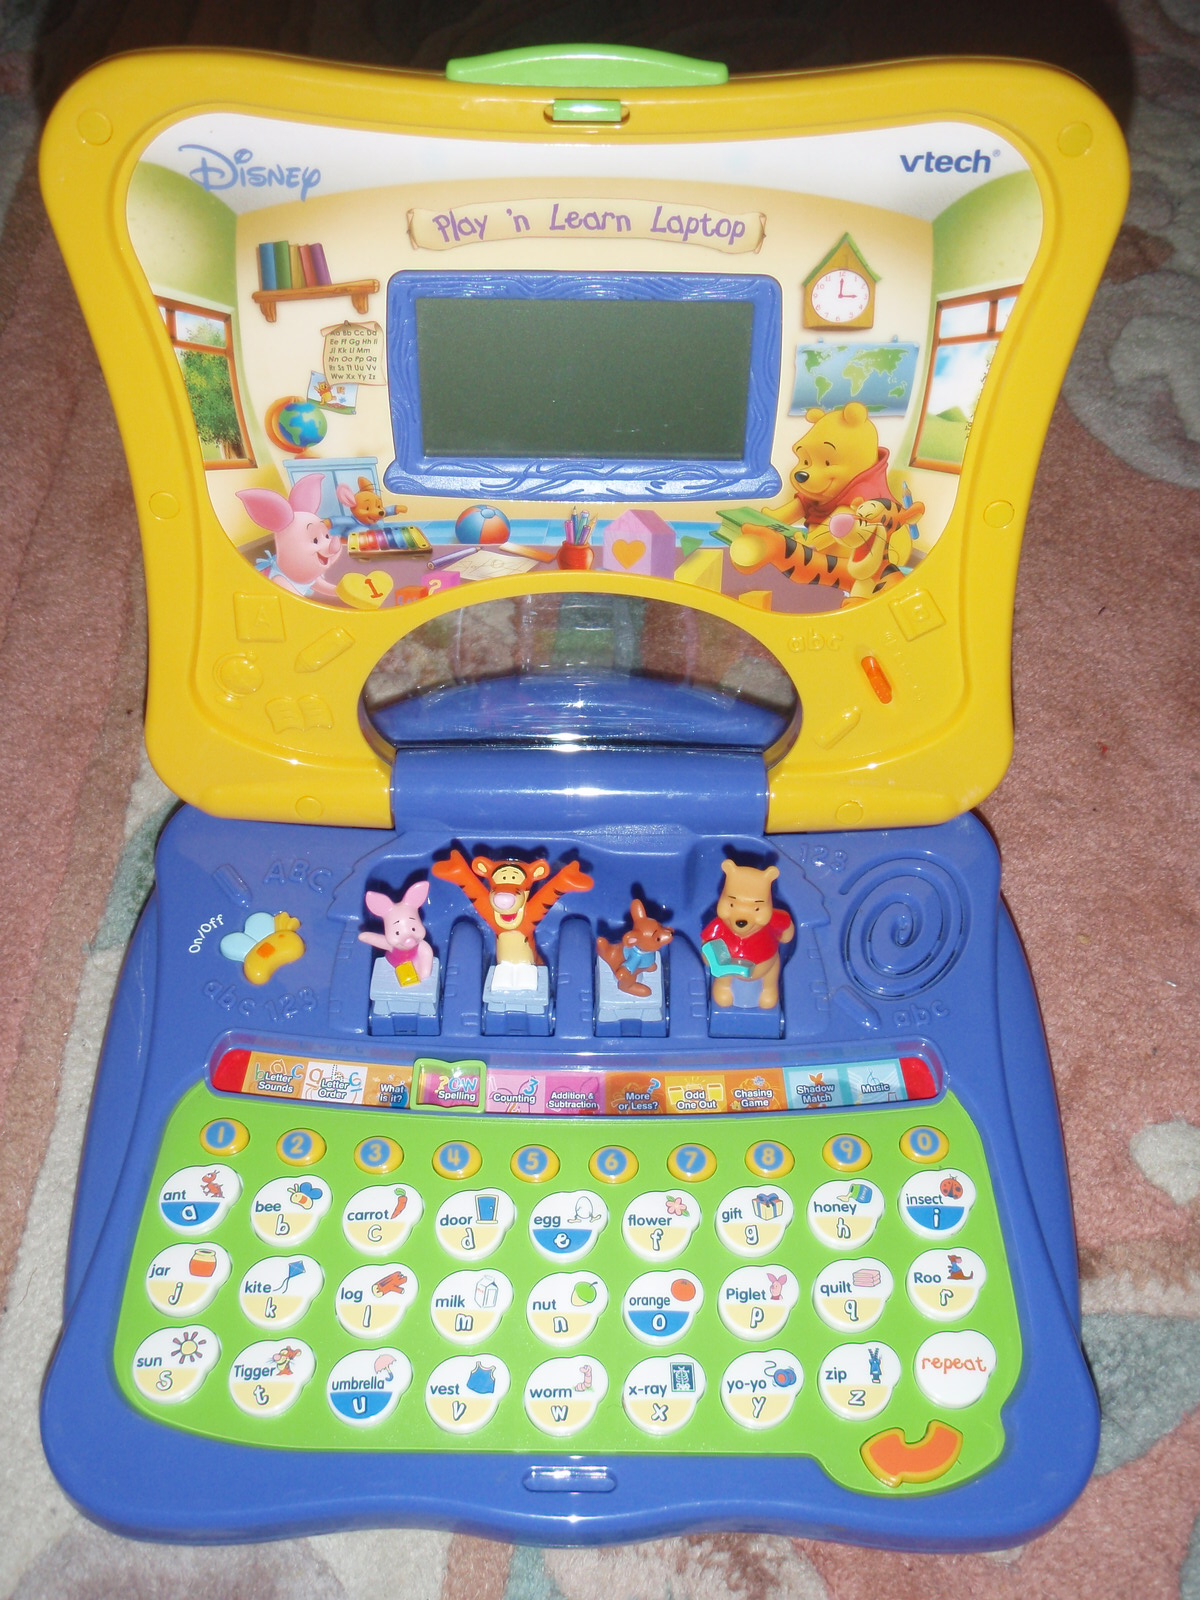 VTech - Winnie the Pooh Play & Learn Laptop - Walmart.com